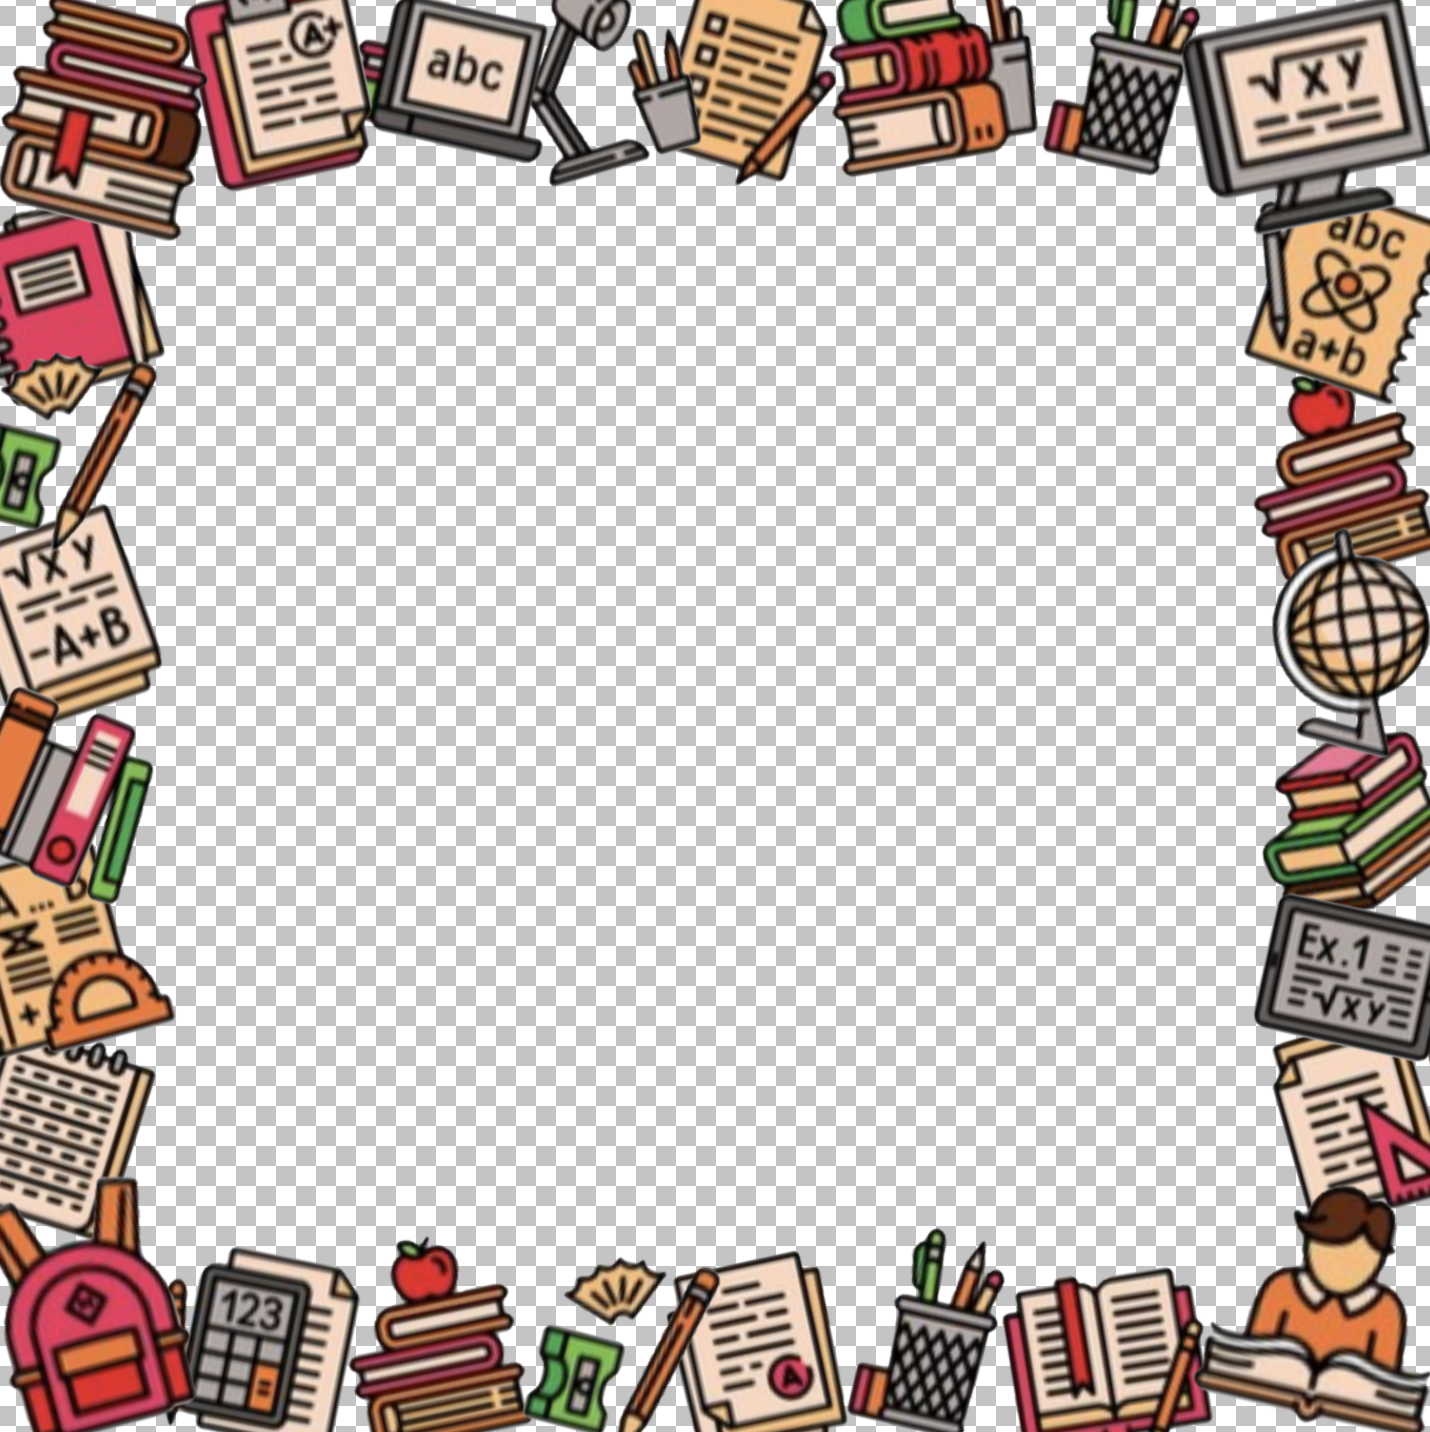 A square photo frame featuring many school supply icons around the edge.